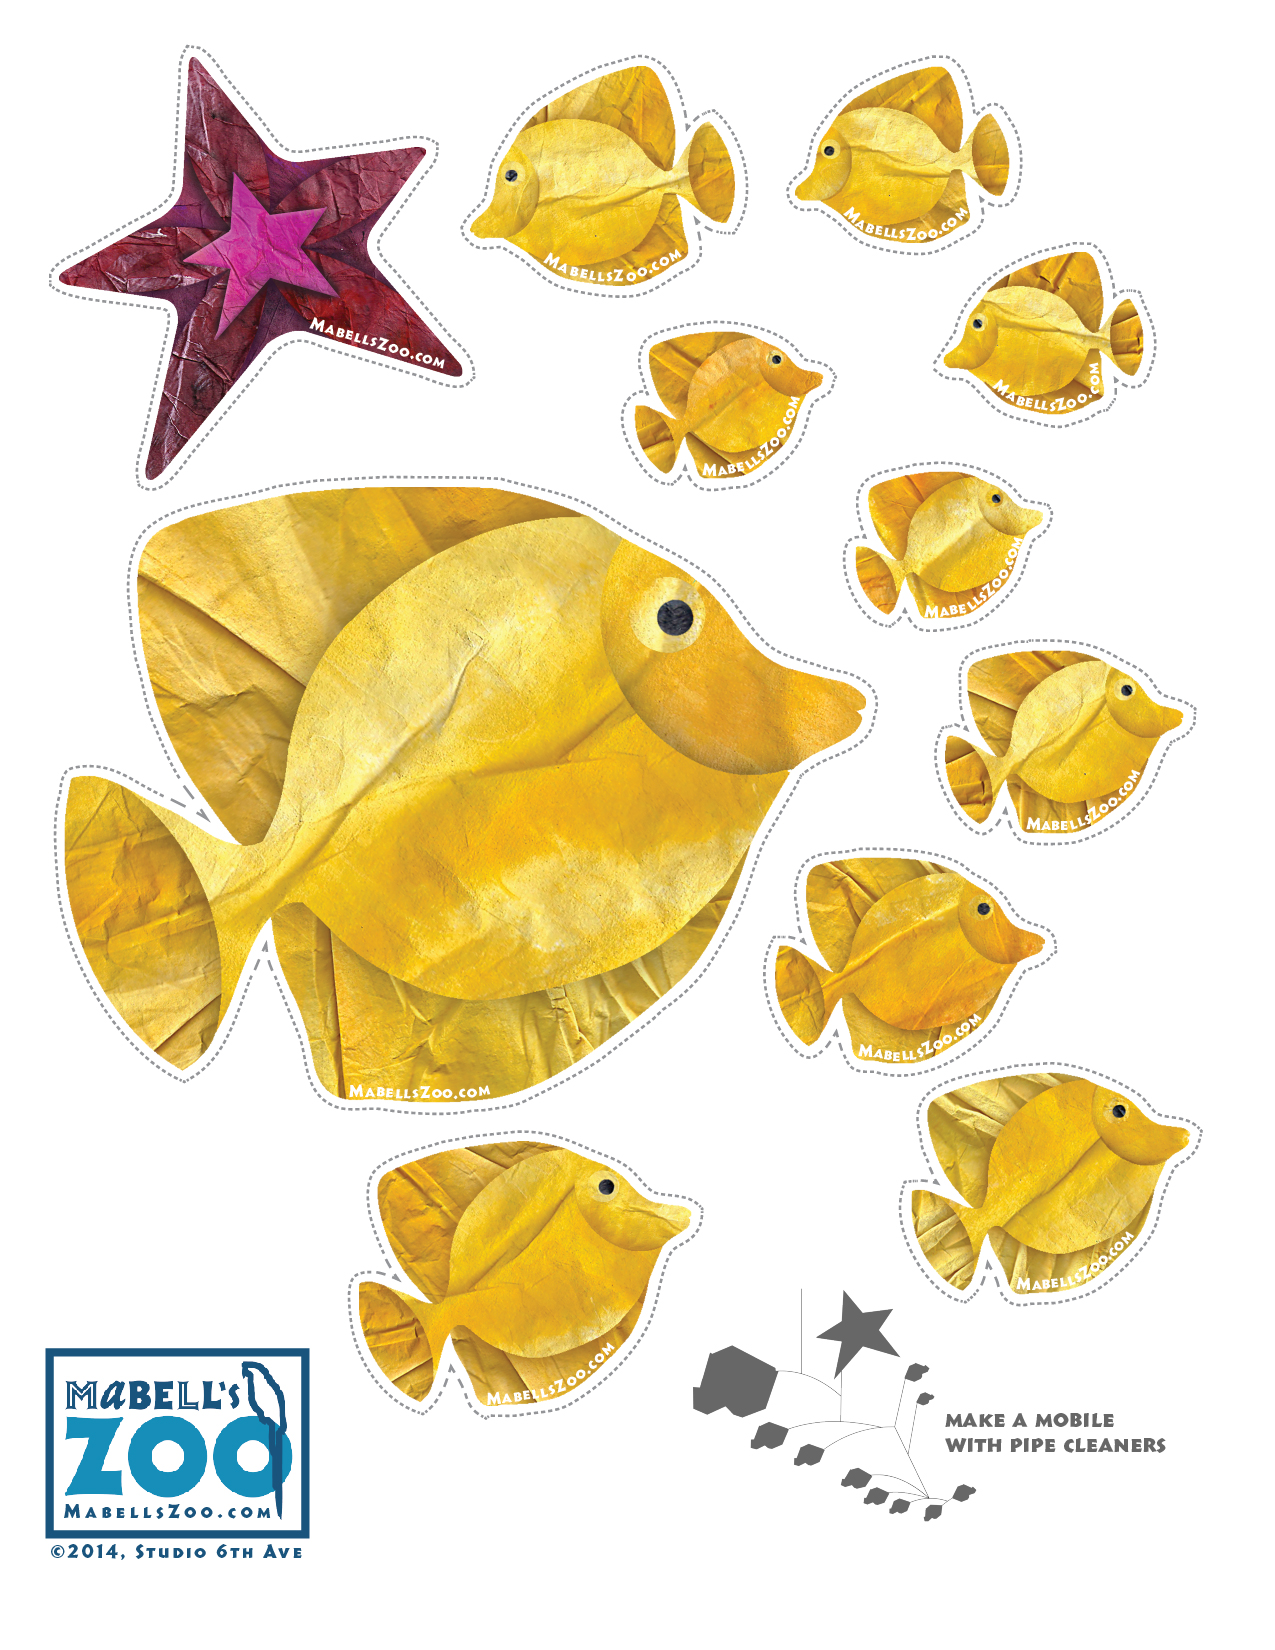 Mabell's Zoo Cutouts: Ten Fish